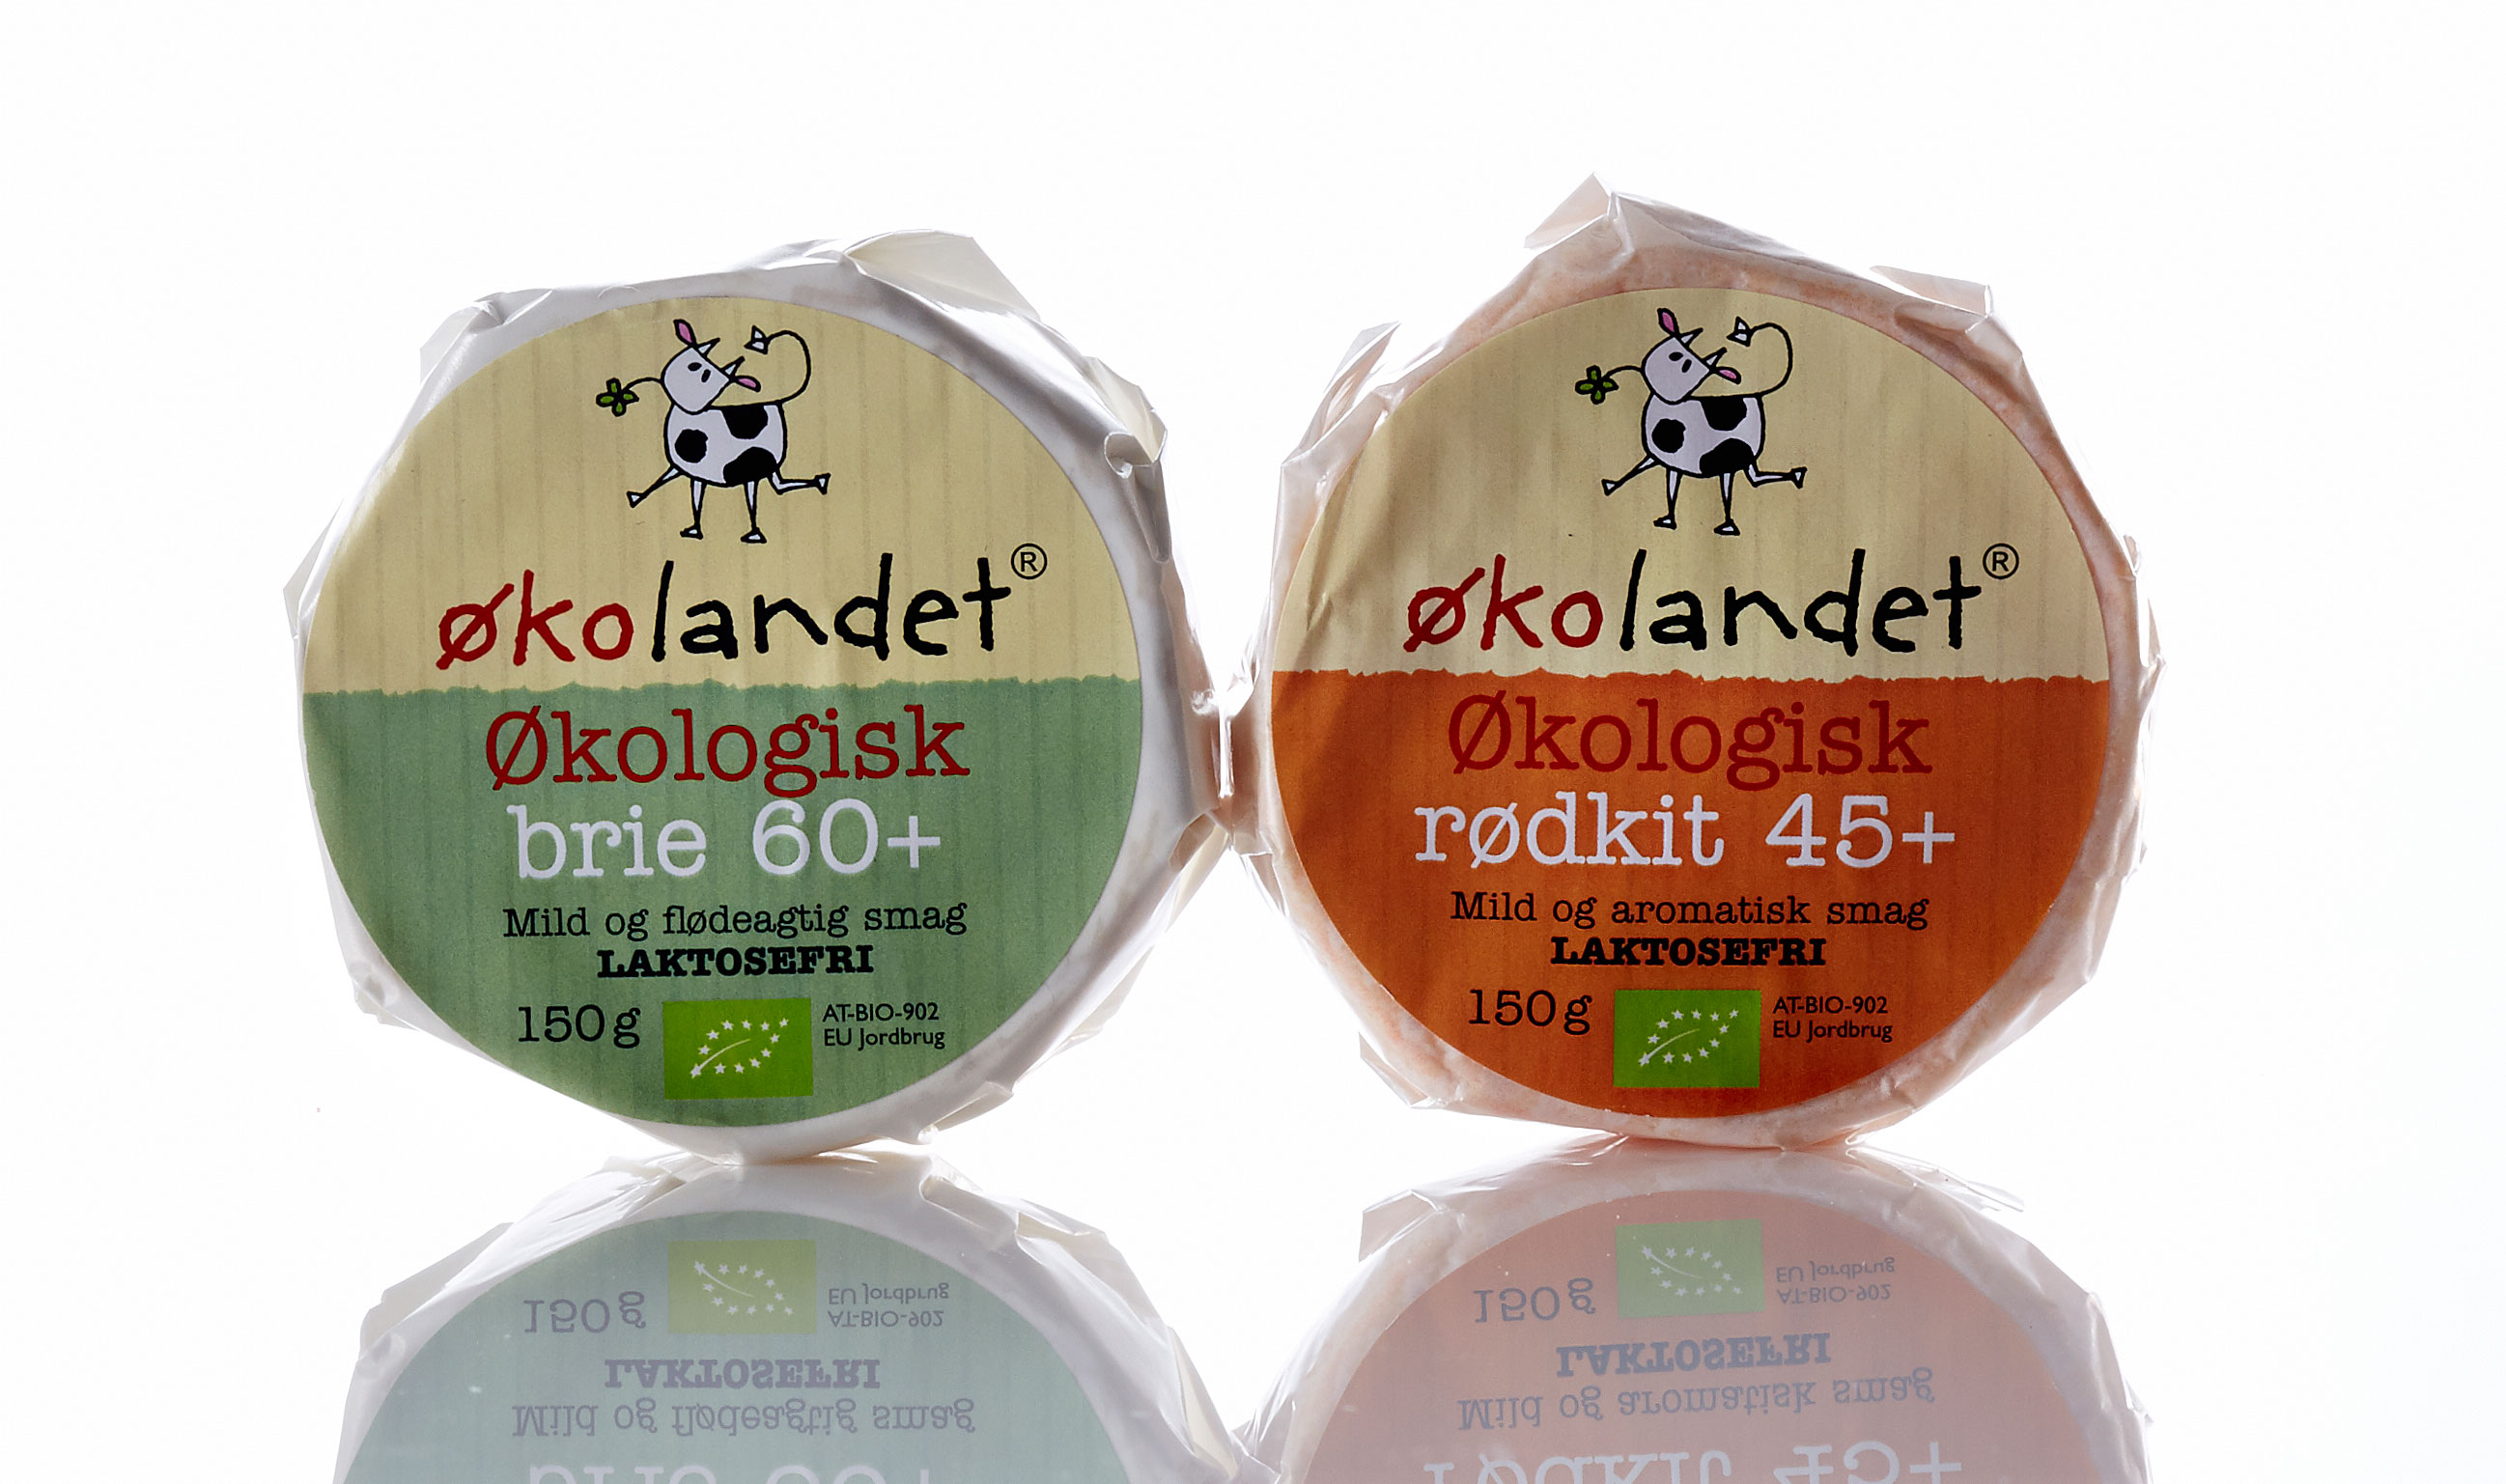 Emballagedesign_Falengreen_Oekolandet_brie